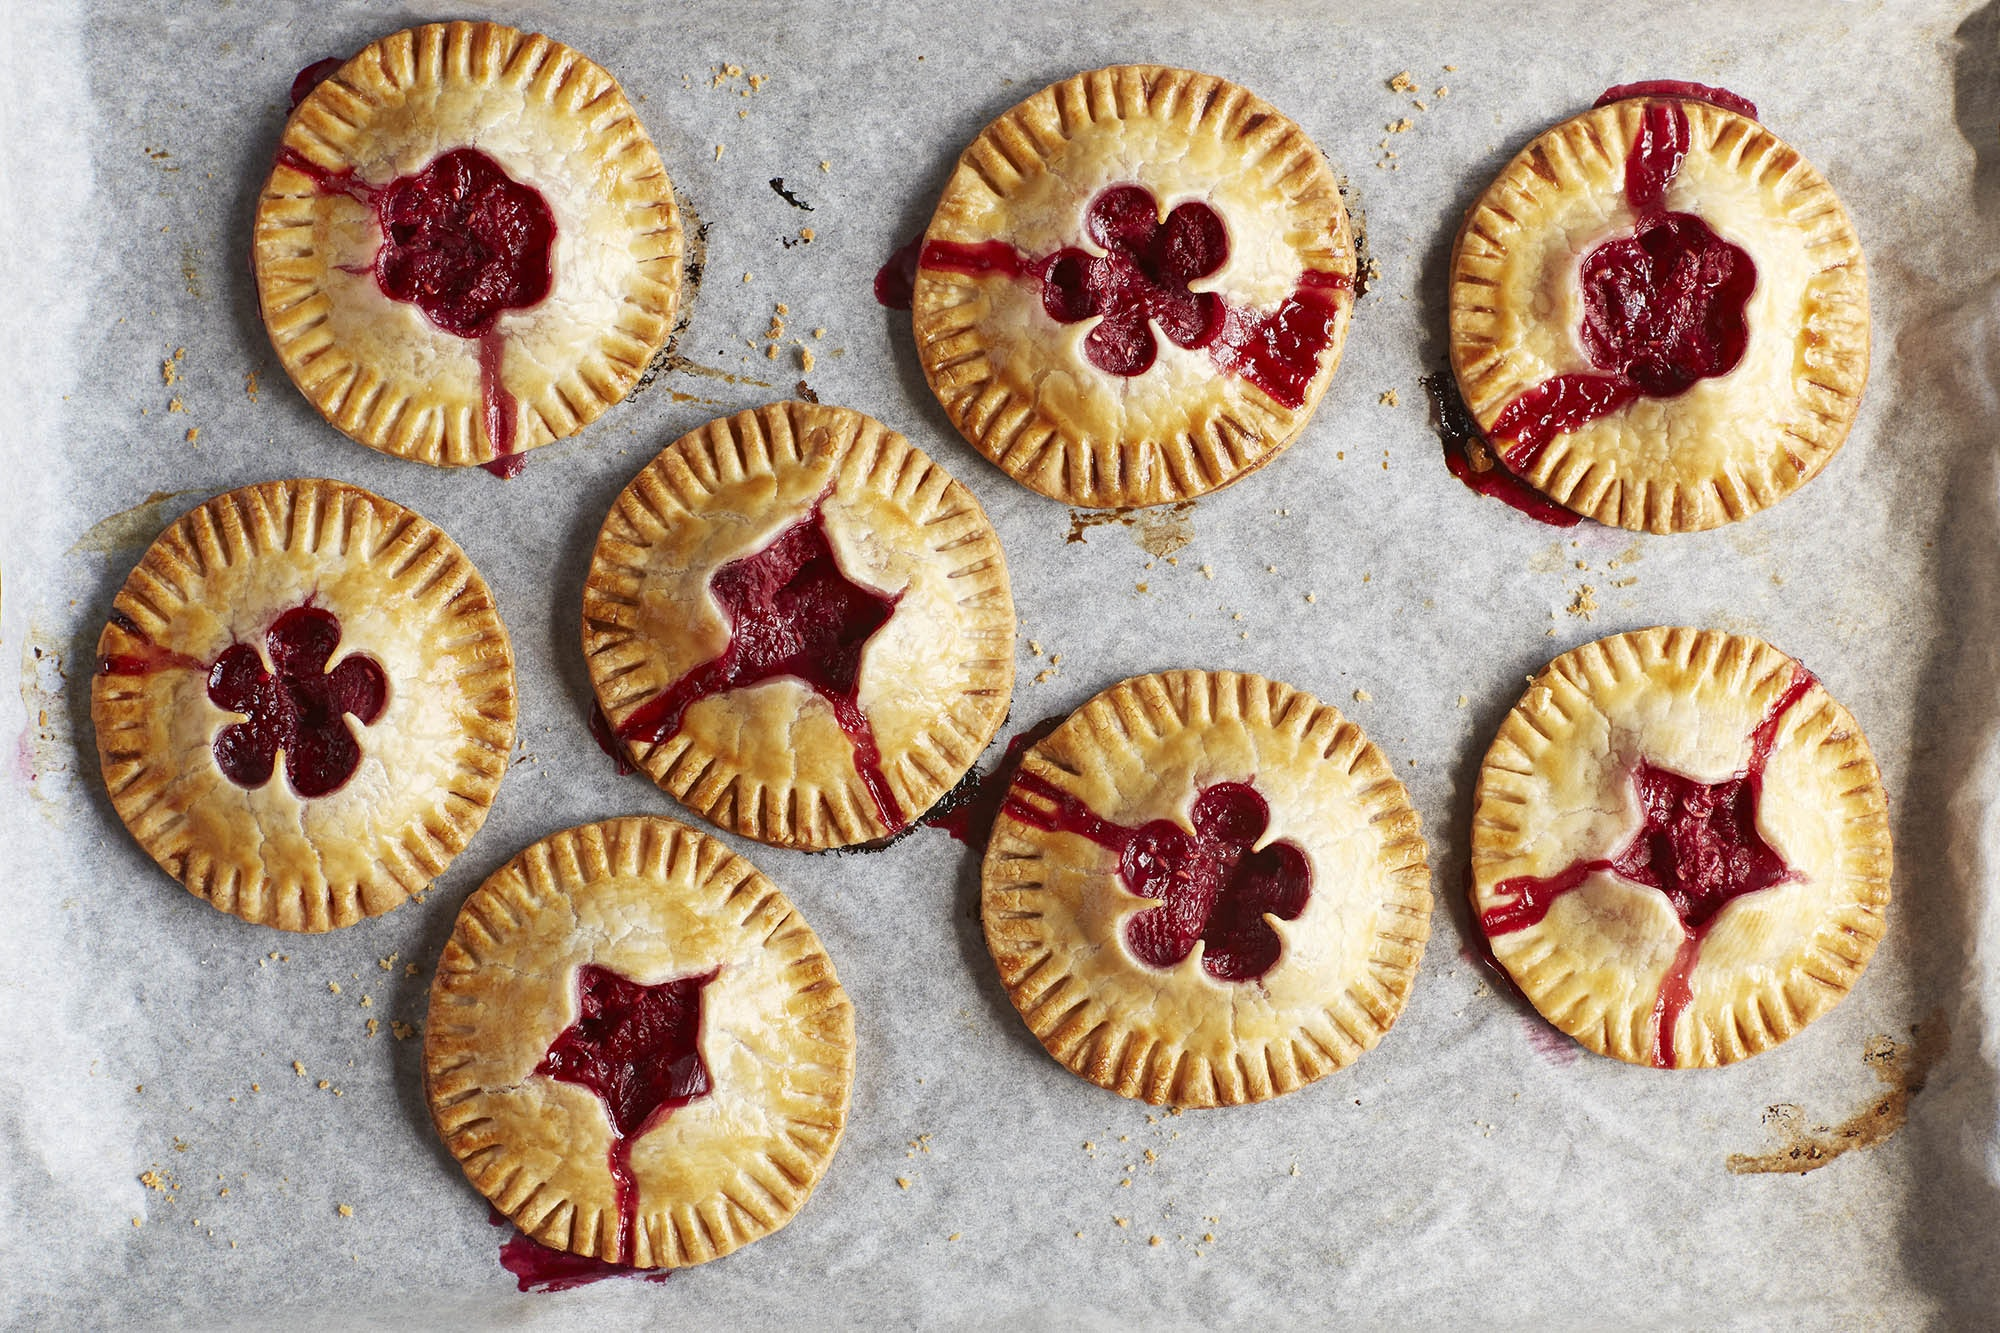 Raspberry hand pies with with shape cutouts